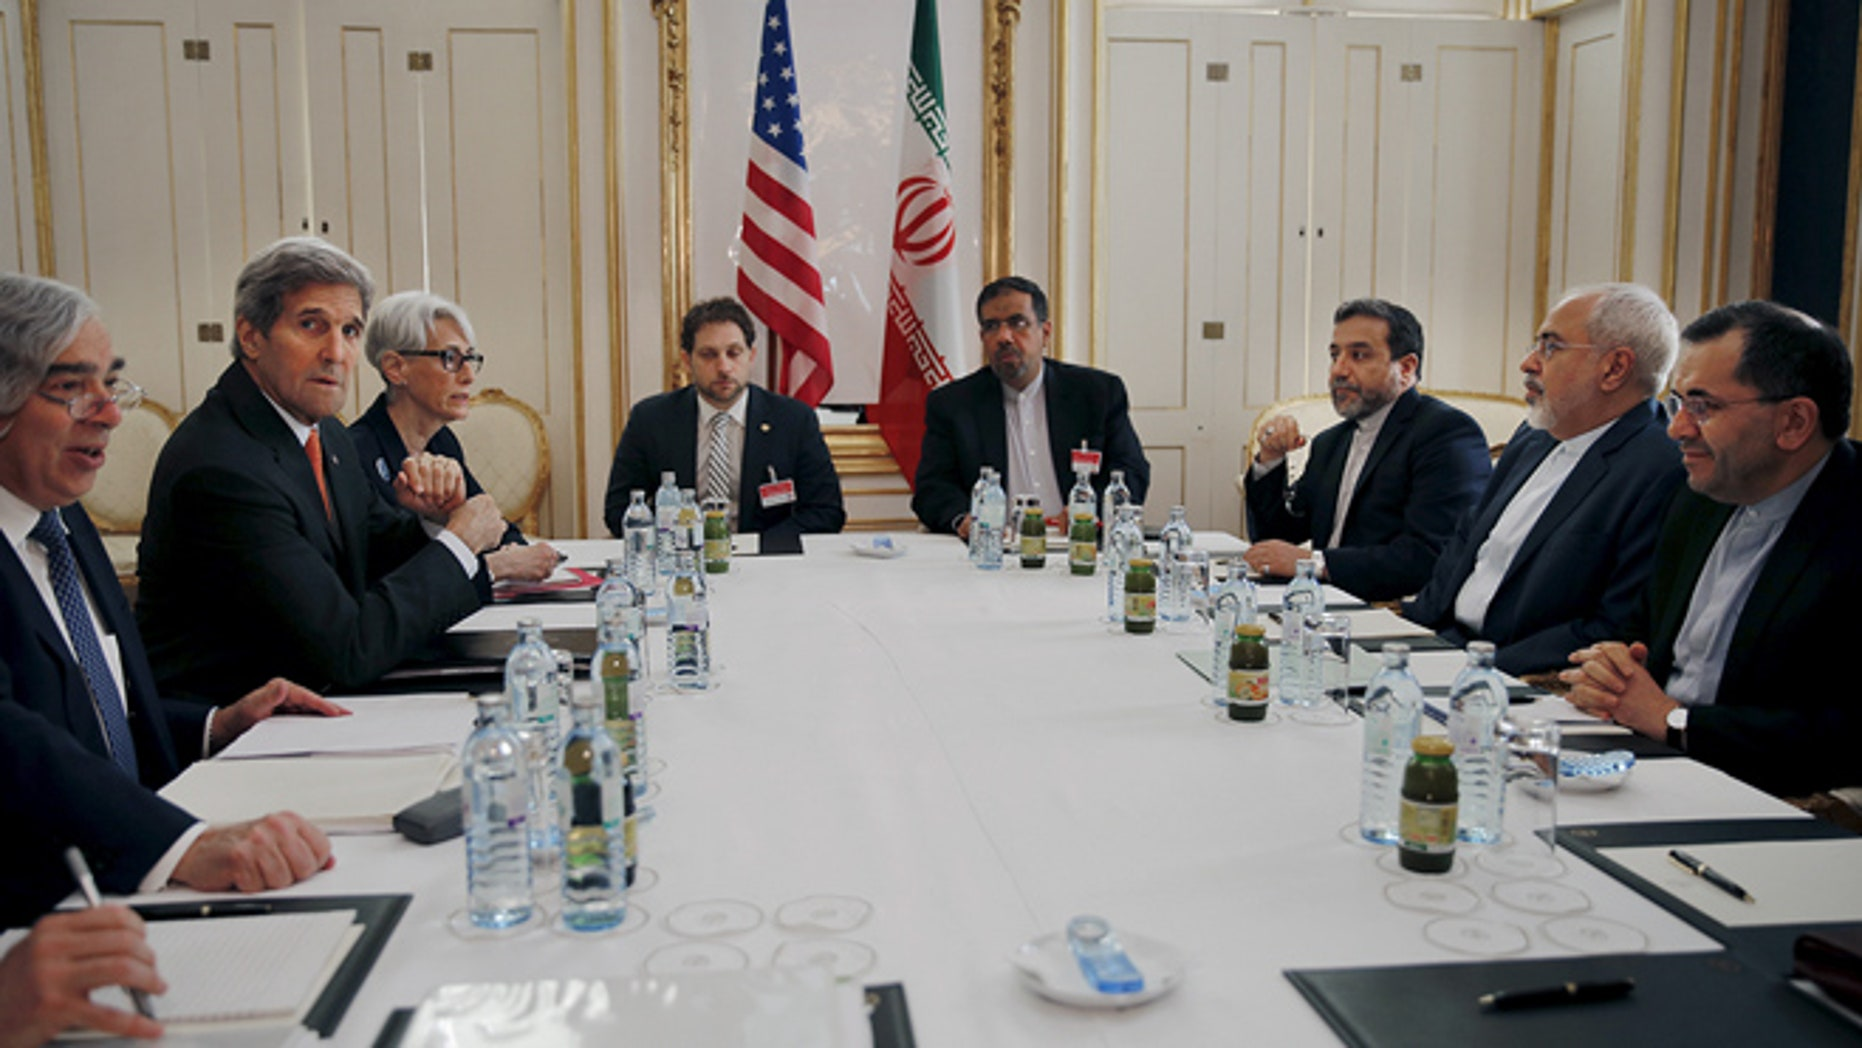 U.S. Secretary of Energy Ernest Moniz, U.S. Secretary of State John Kerry and U.S. Under Secretary for Political Affairs Wendy Sherman (L-3rd L) meet with Iranian Foreign Minister Mohammad Javad Zarif (2nd R) at a hotel in Vienna, Austria June 28, 2015.